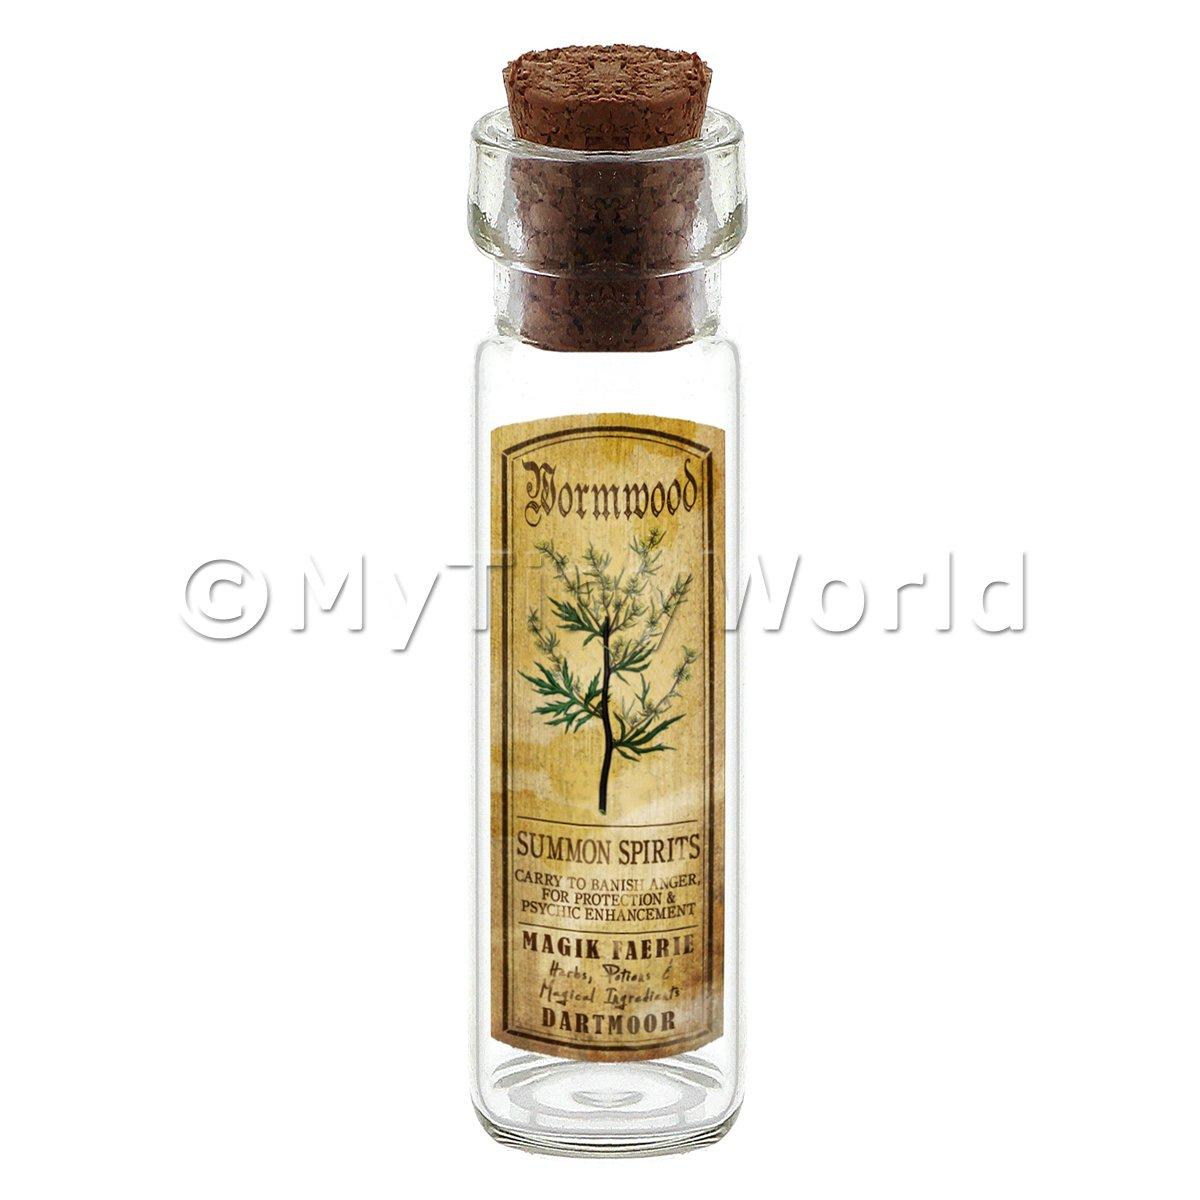 Dolls House Apothecary Wormwood Herb Long Colour Label And Bottle